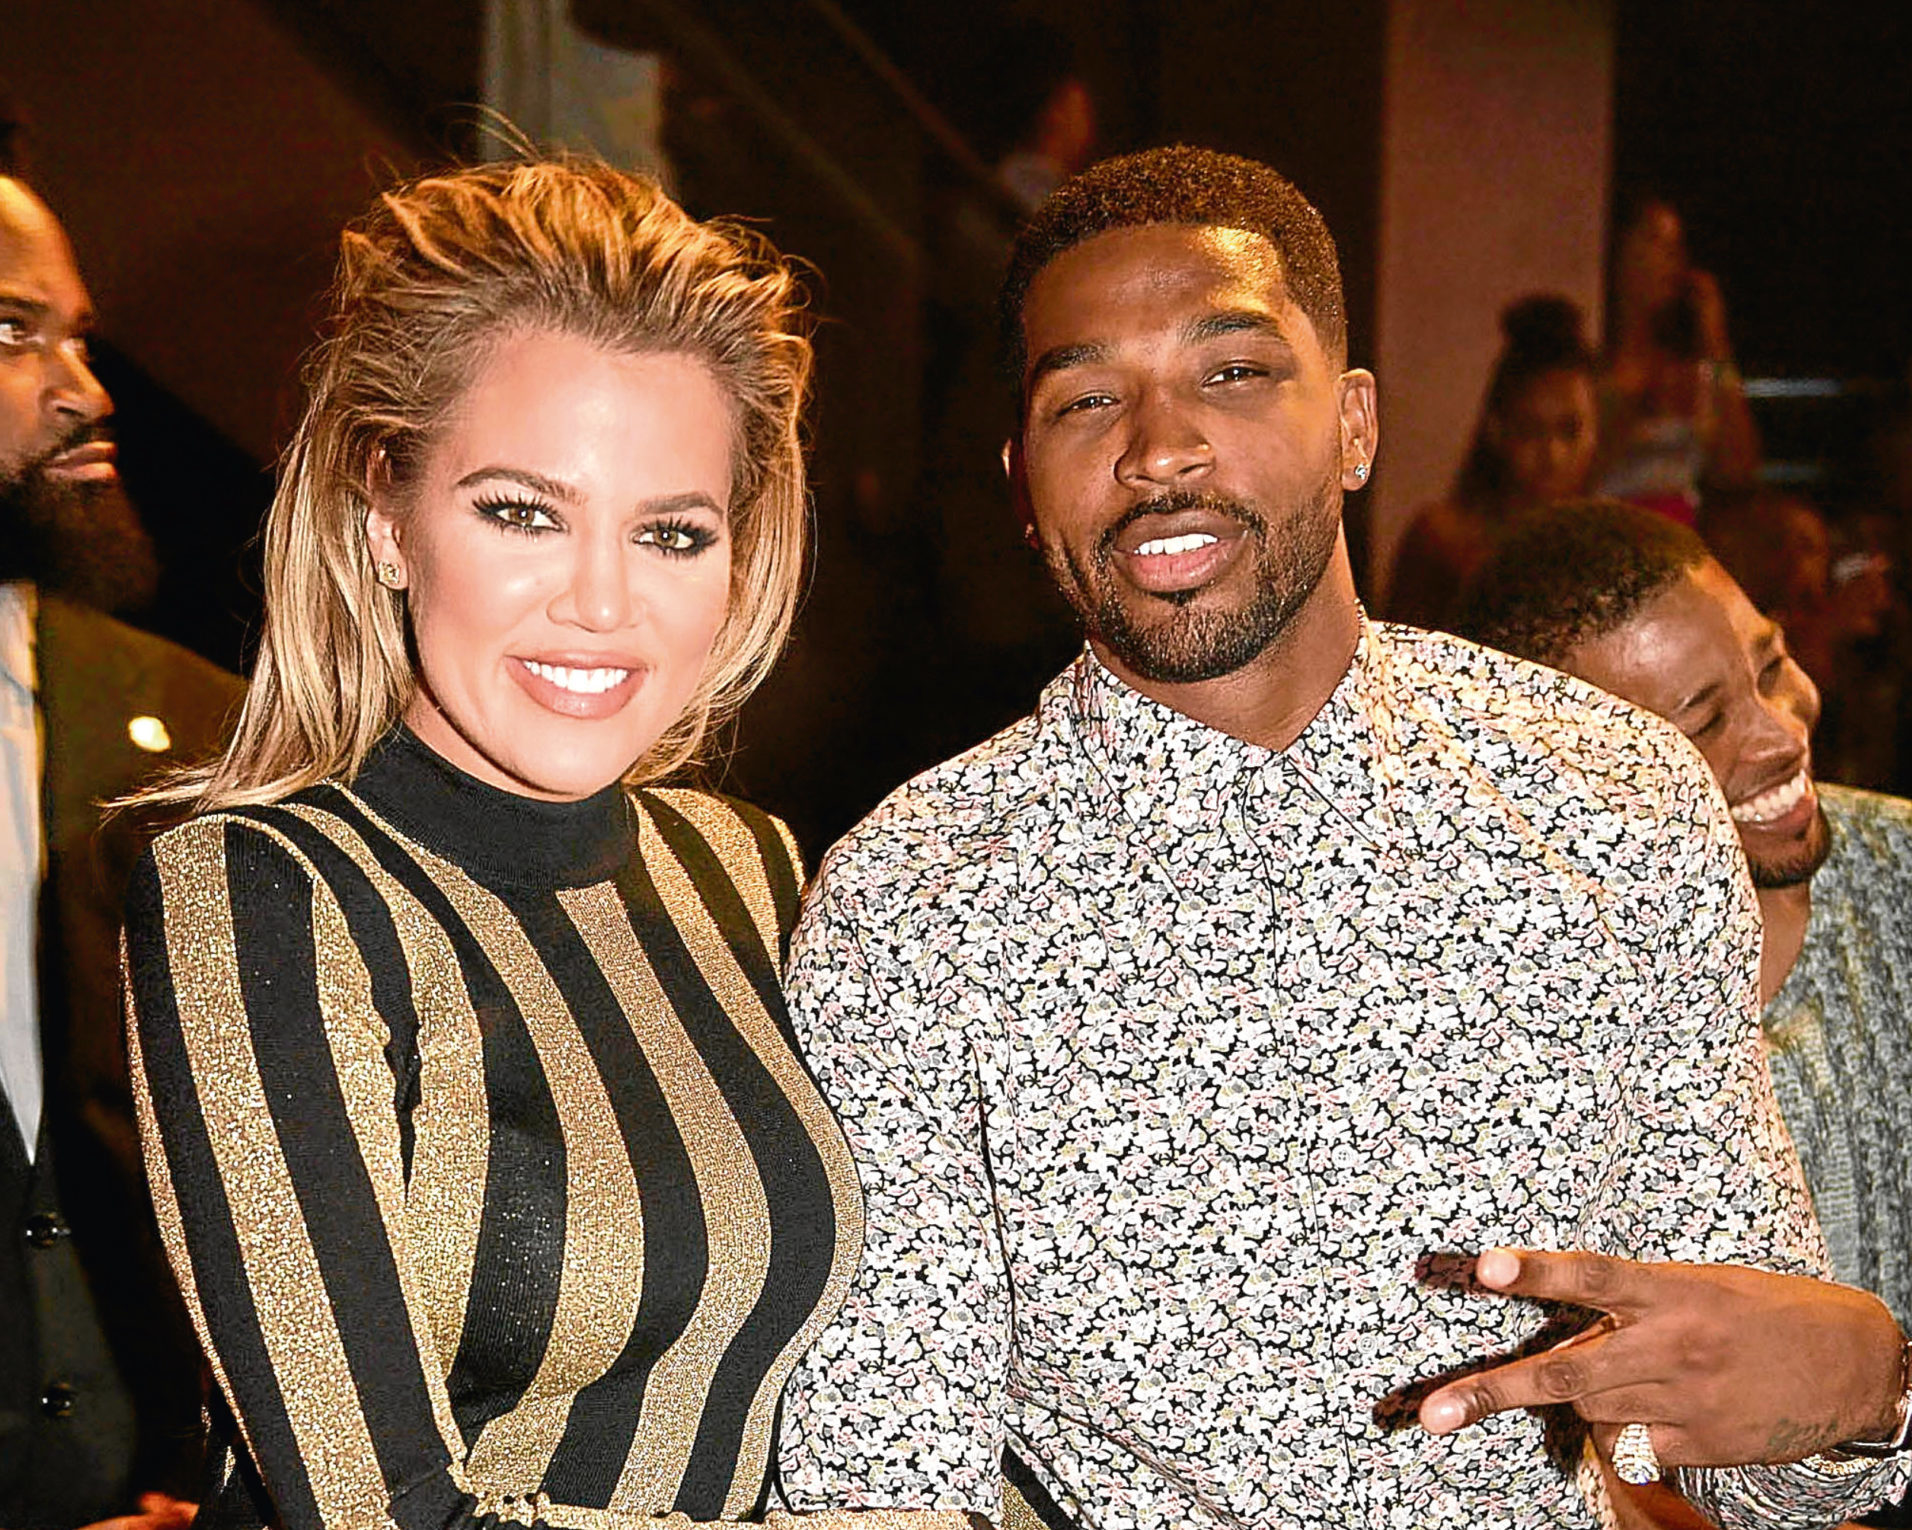 Khloe Kardashian And Tristan Thompson (Seth Browarnik/startraksphoto.com)